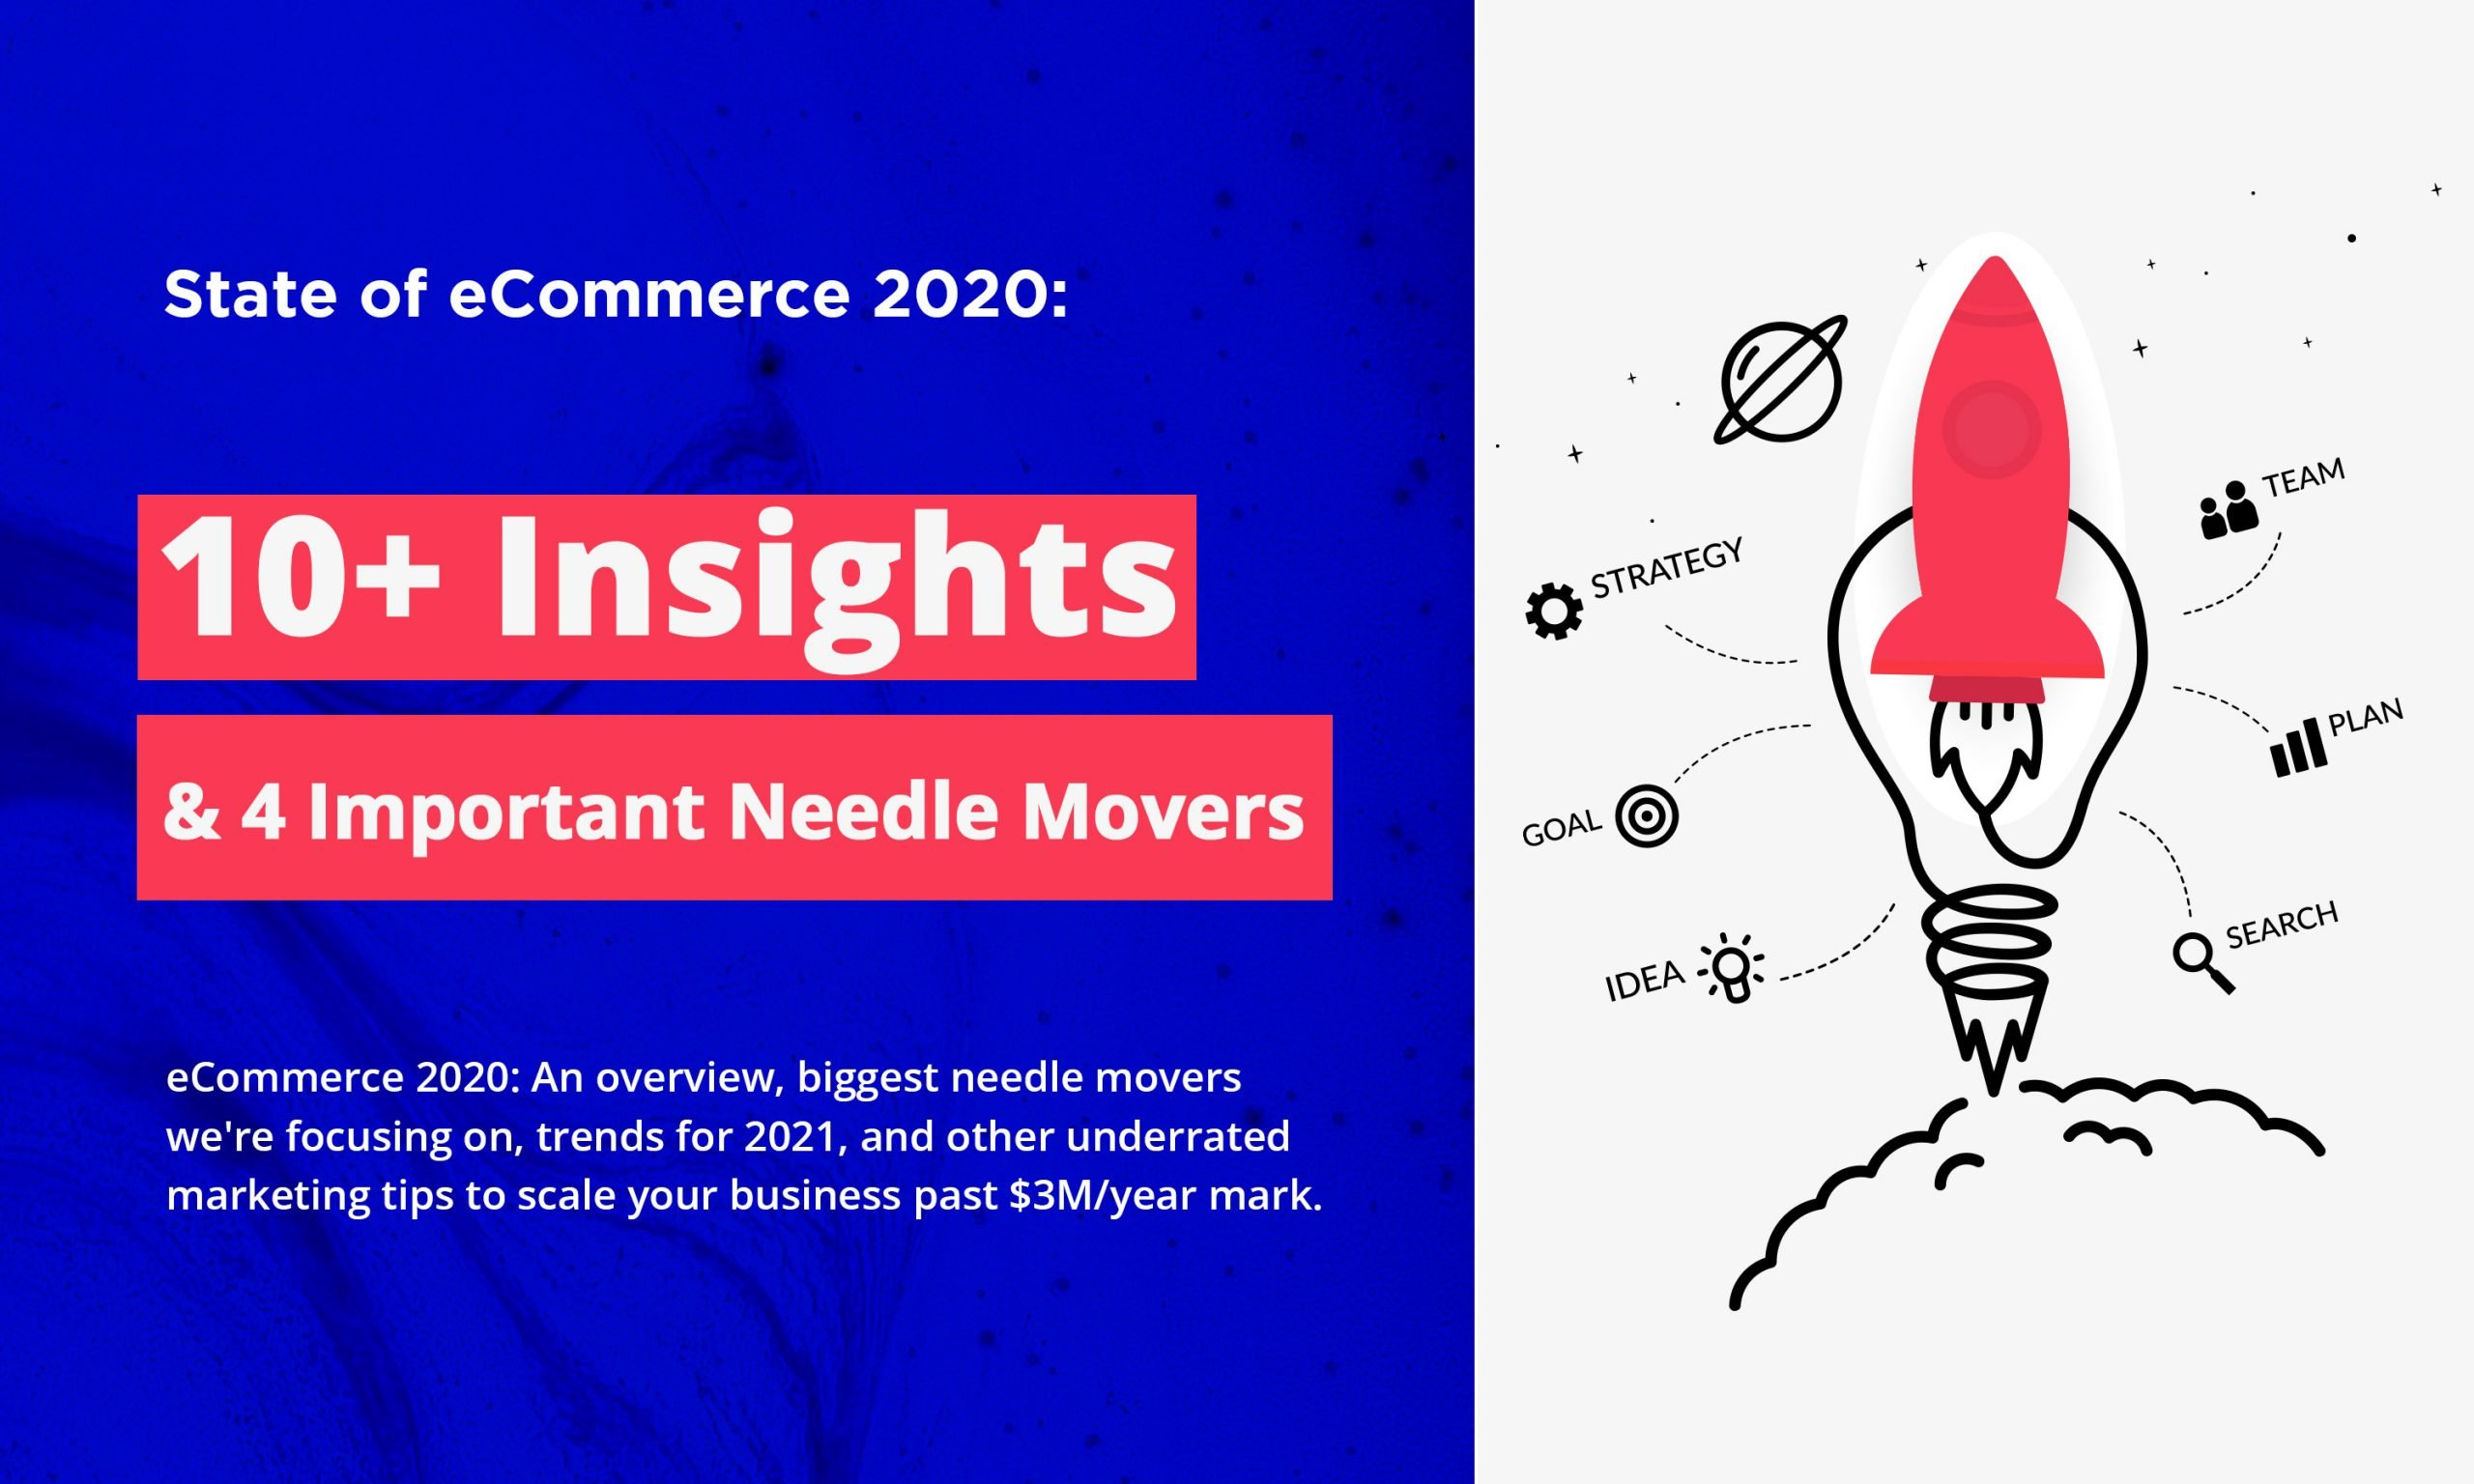 State of eCommerce 2020: 10+ Insights and 4 Important Needle Movers